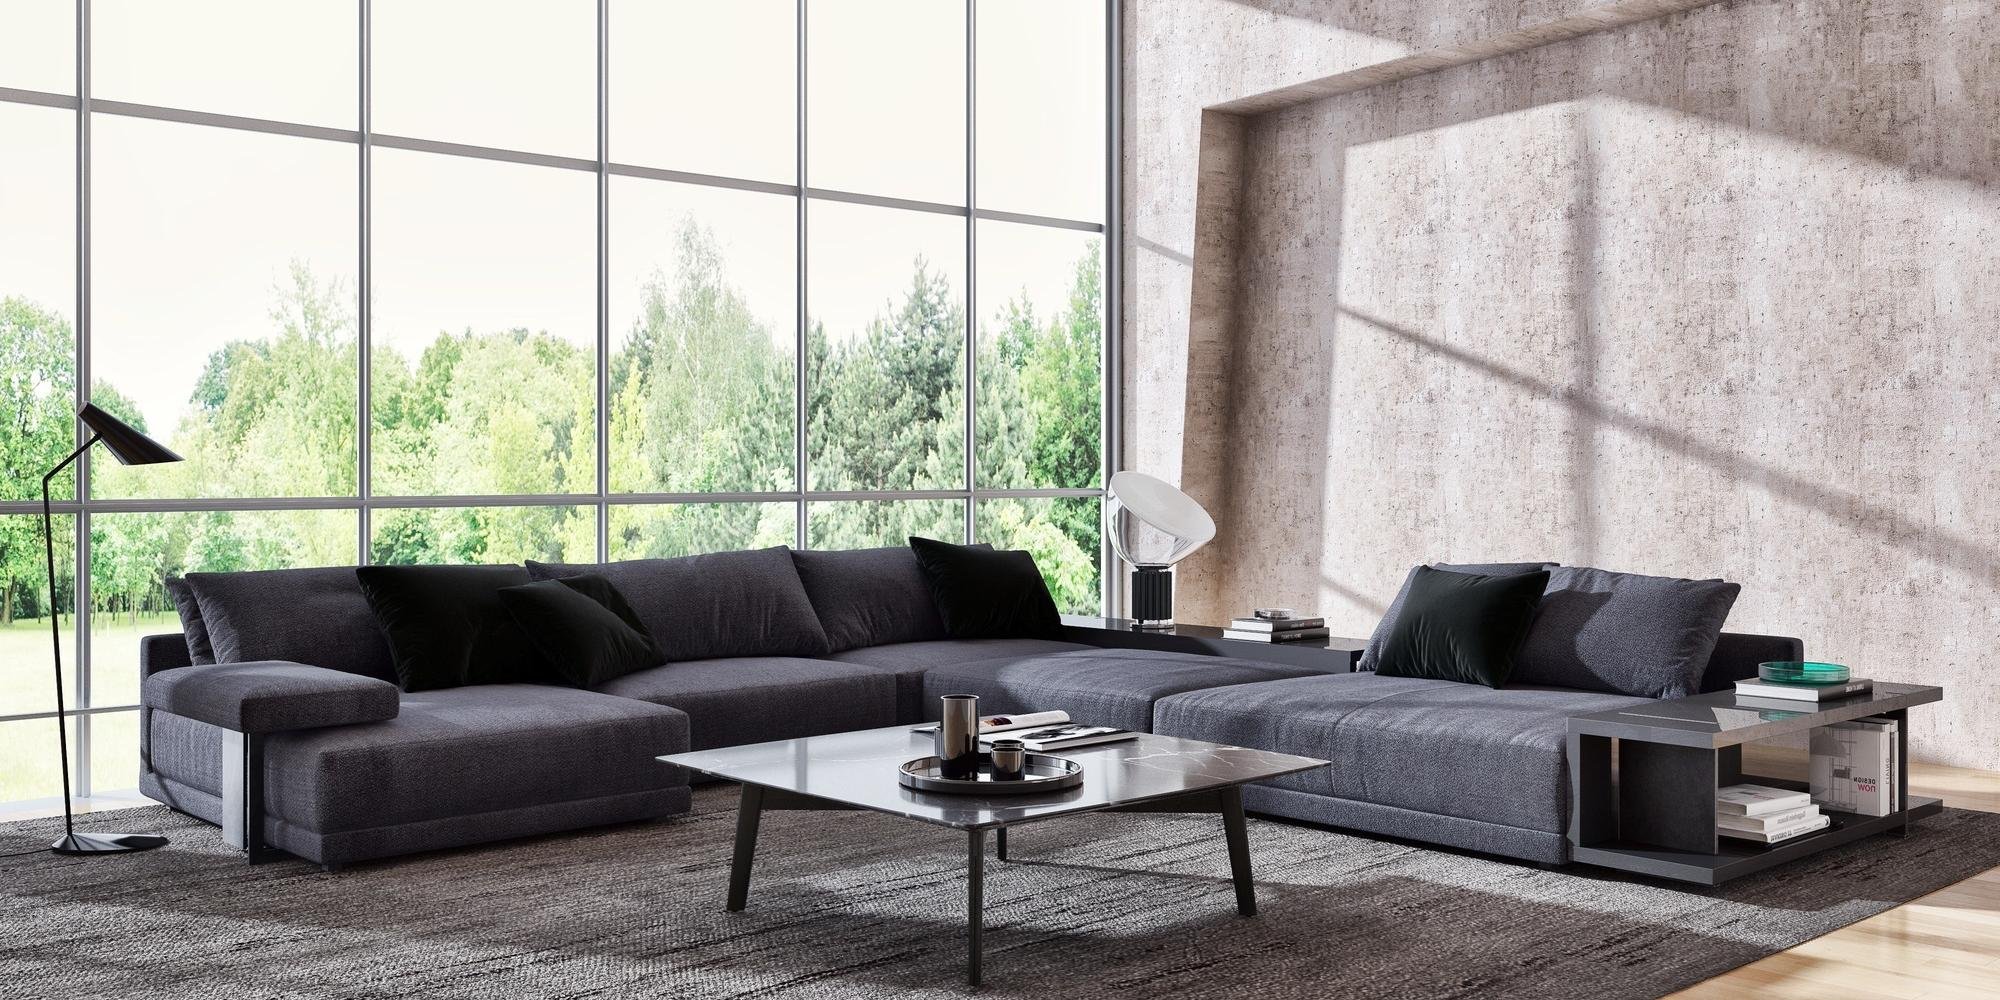 5 types of accent furniture for your living room  bova